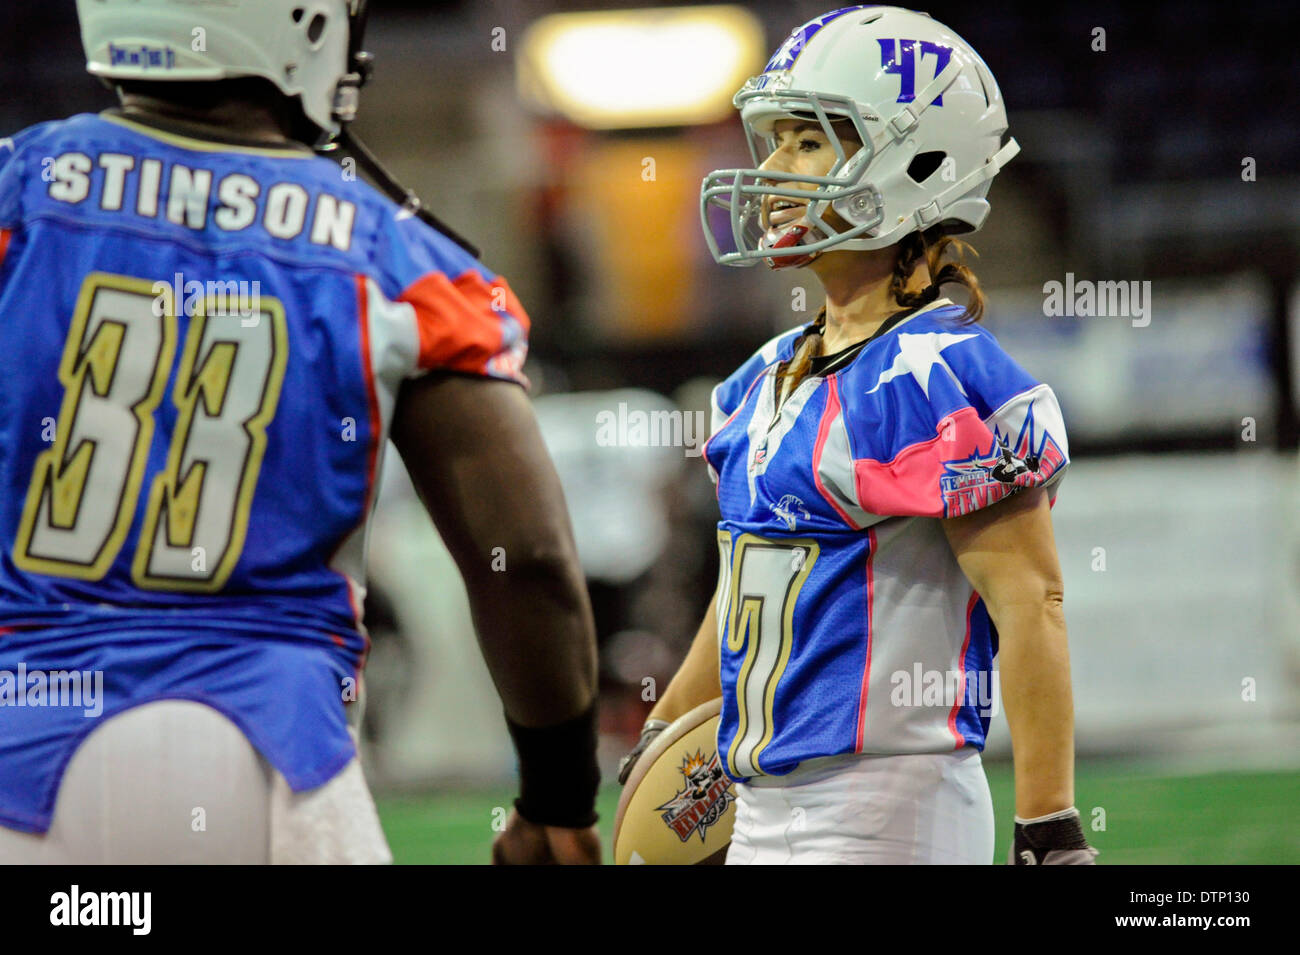 Allen, TX, USA. 21st Feb, 2014. Texas Revolution running back Jennifer Welter (47) during pre game warmups prior Stock Photo